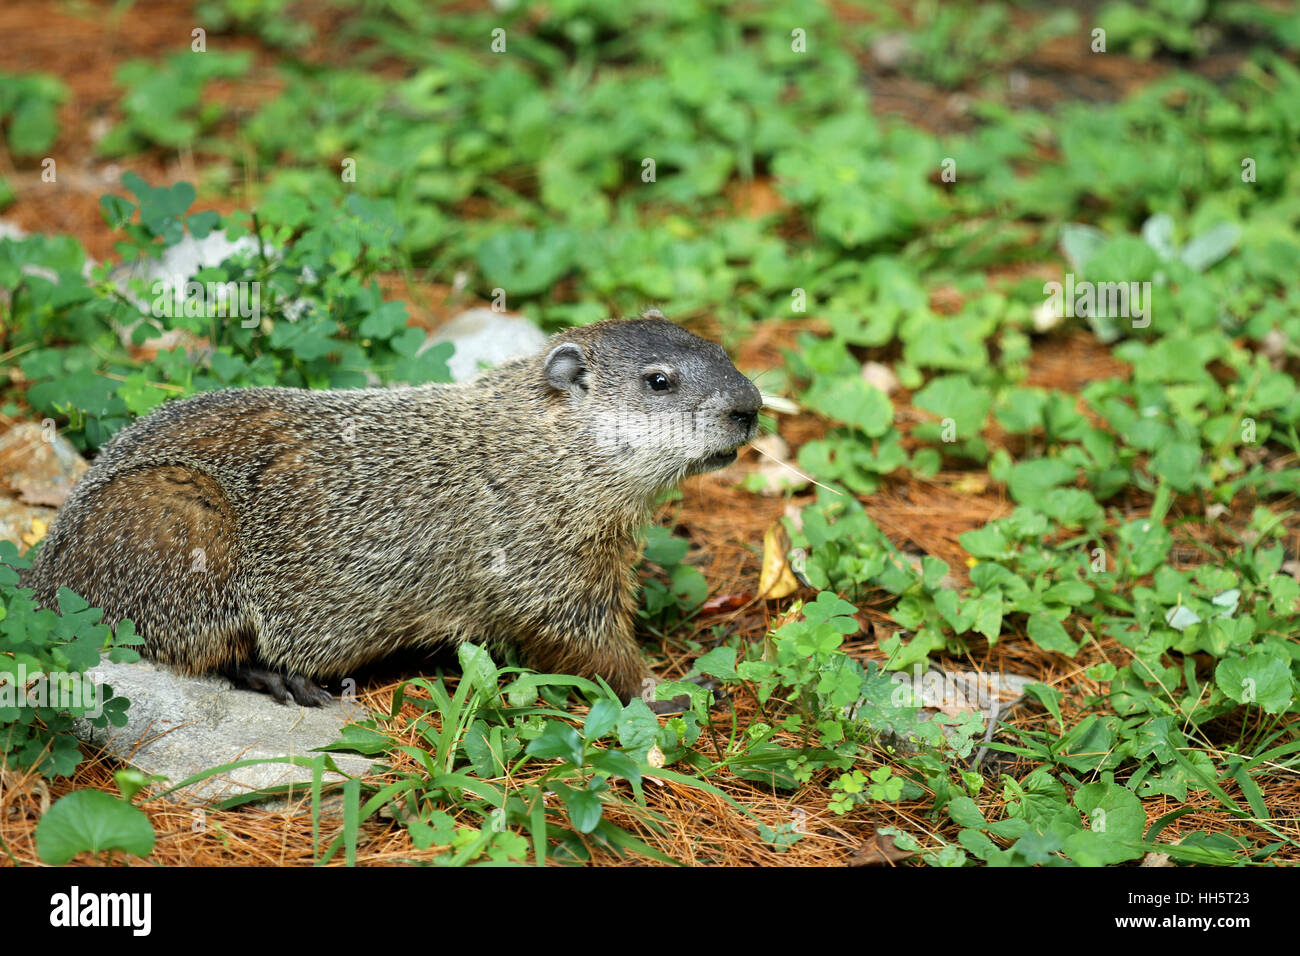 Groundhog (Marmota monax) eating ground cover during a New England summer - Stock Image